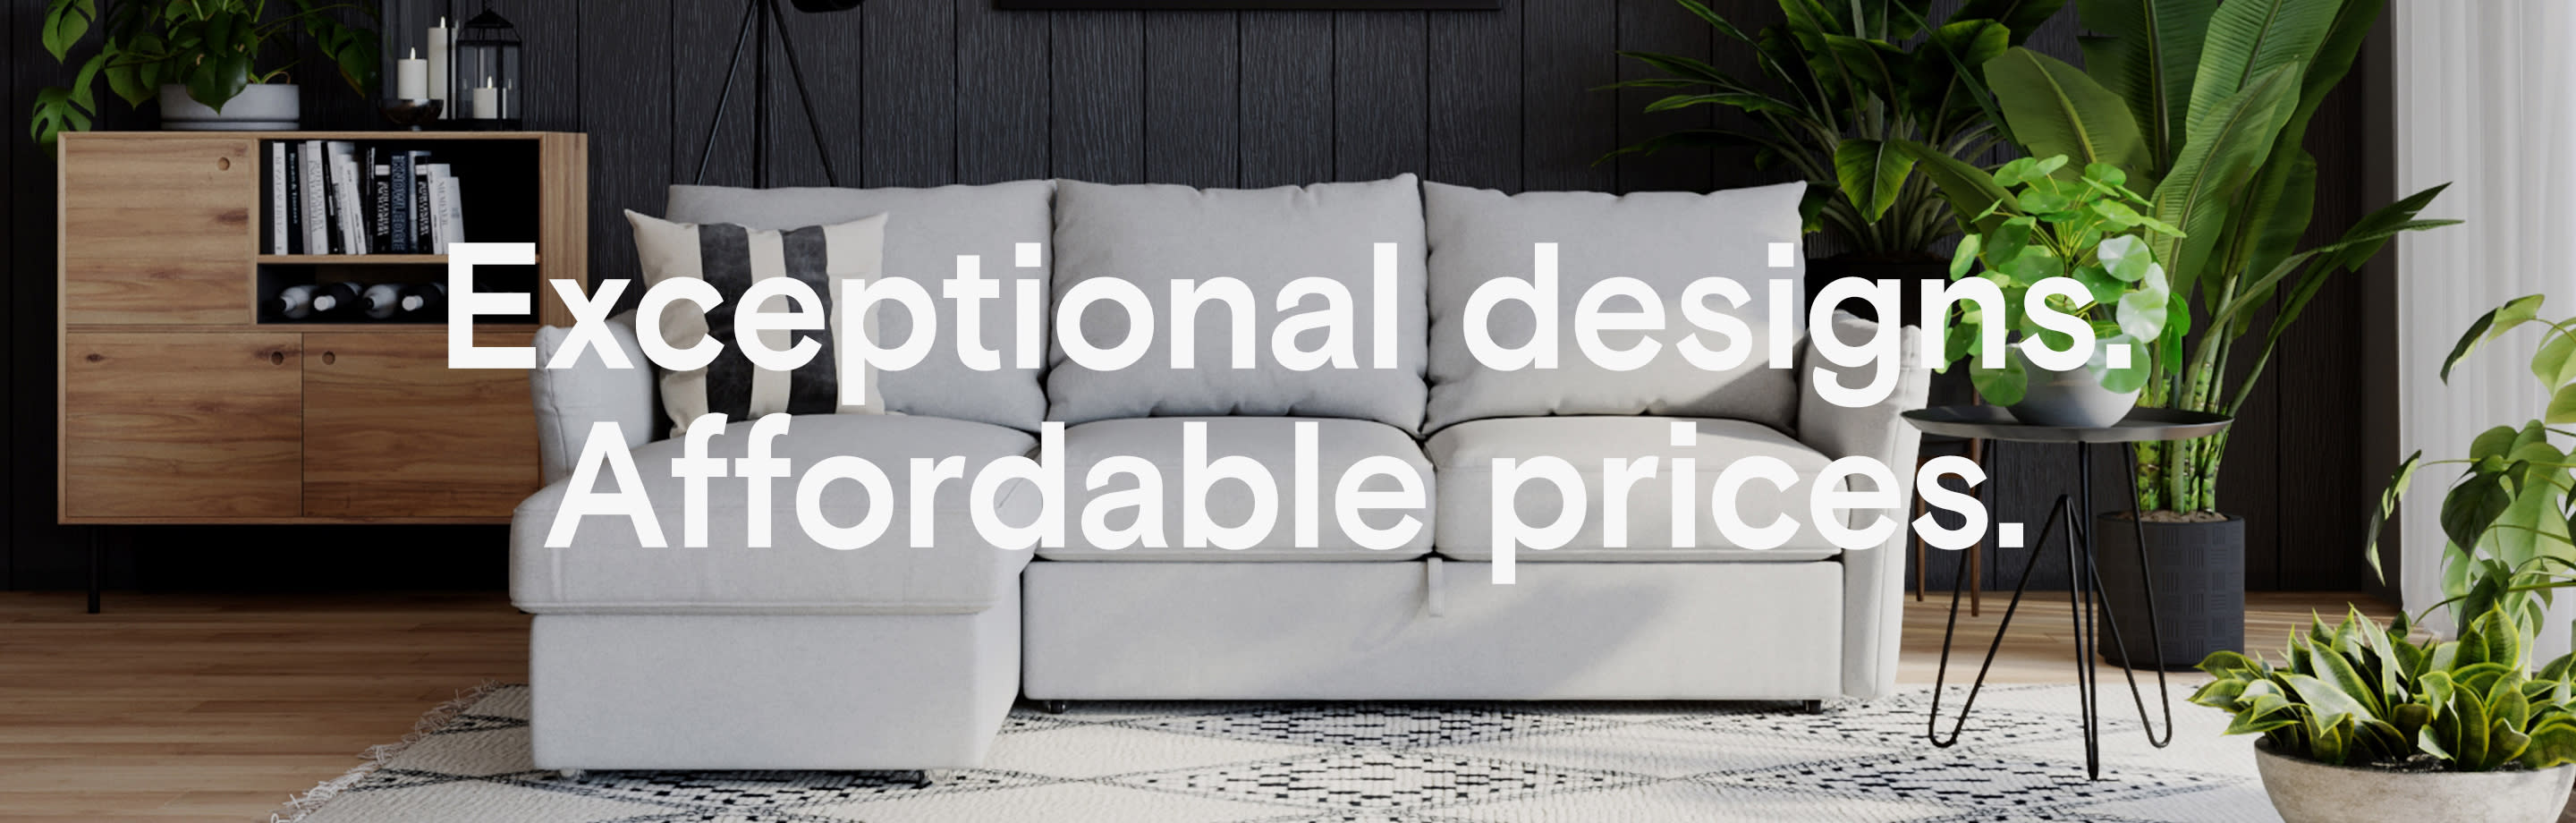 exceptional designs accessible prices